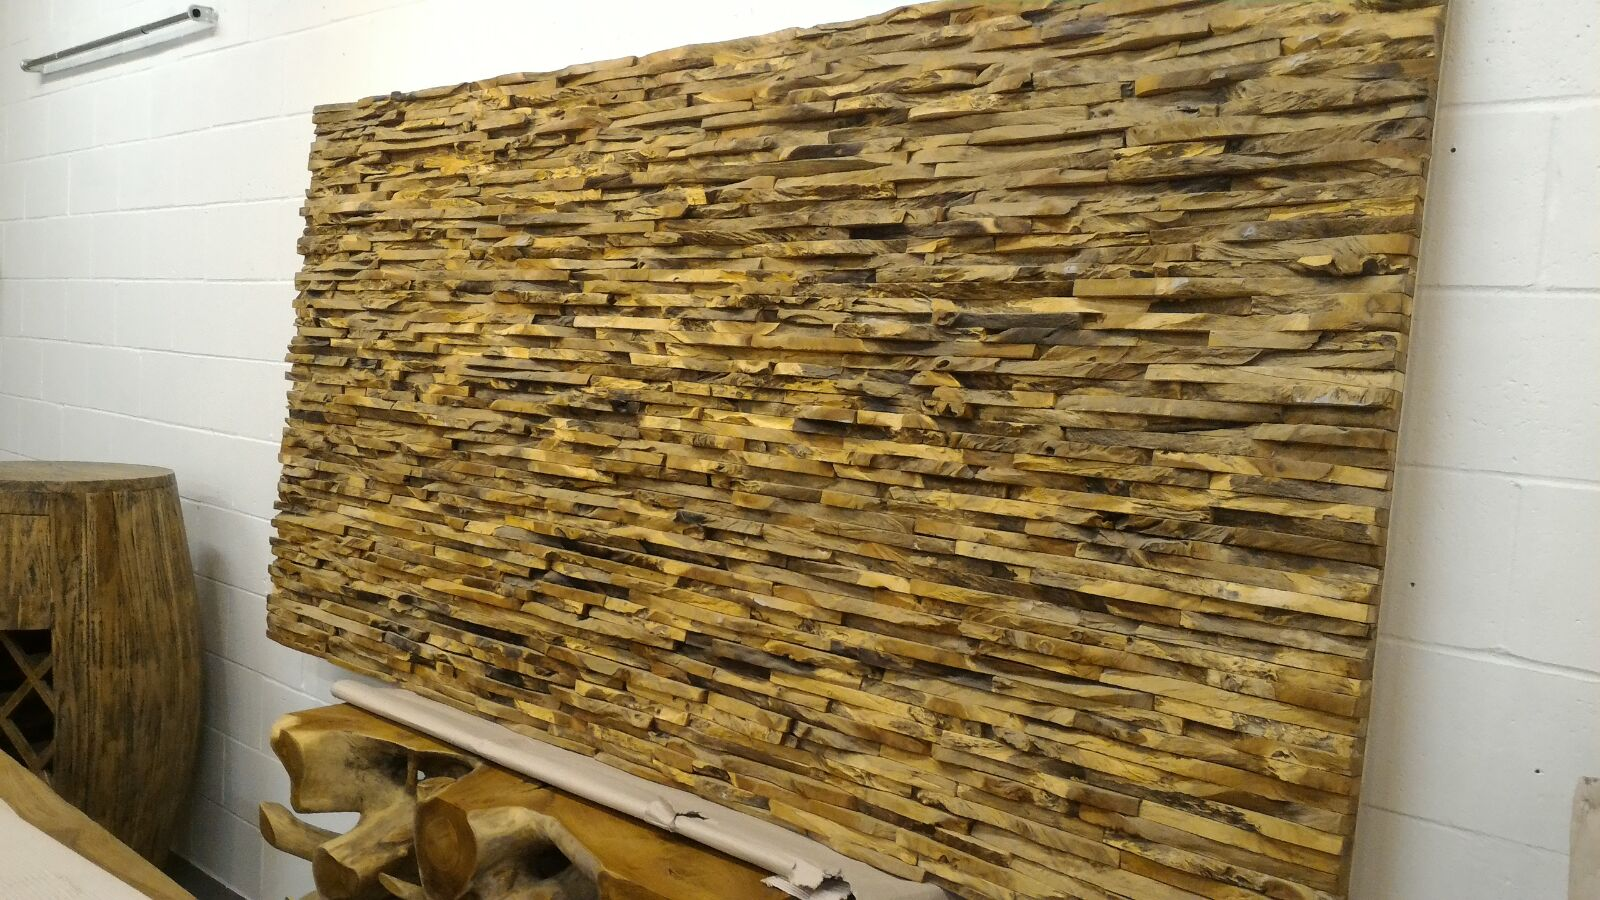 Wood Chip Wall Art Sculpture Decor/Bed Headboard